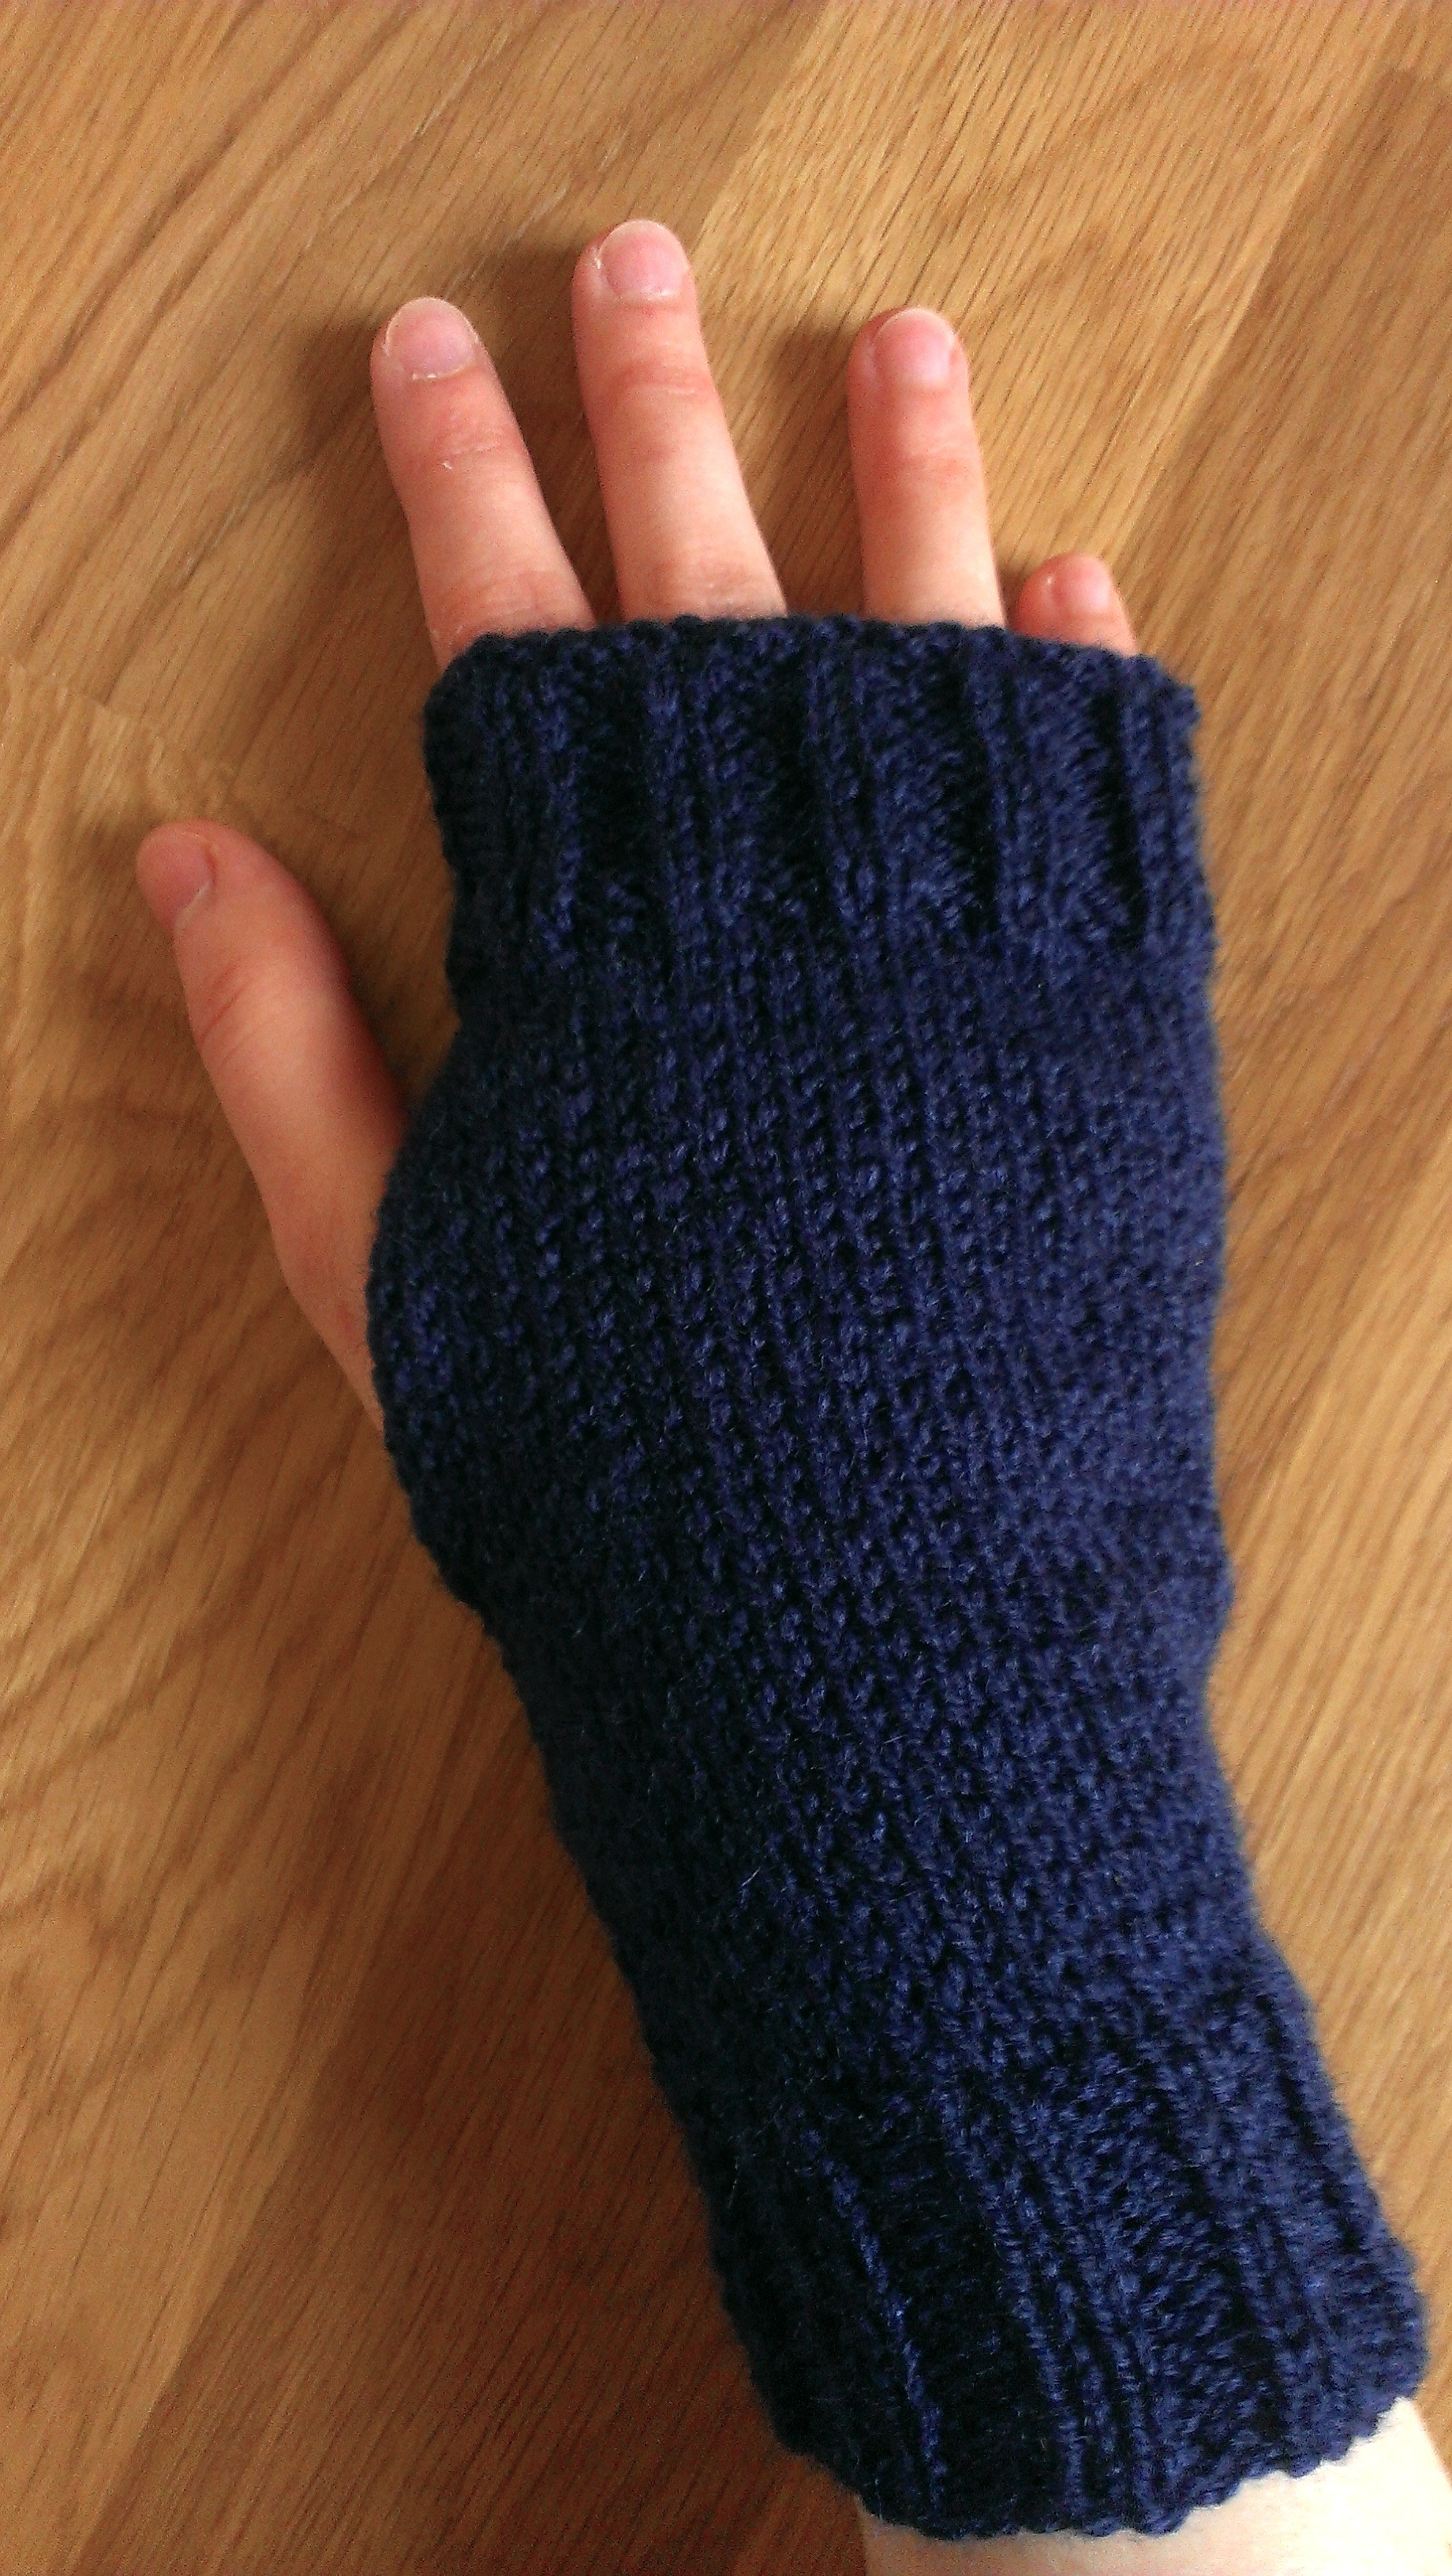 Knit Fingerless Gloves Awesome Knitted Fingerless Gloves Of Gorgeous 47 Pics Knit Fingerless Gloves